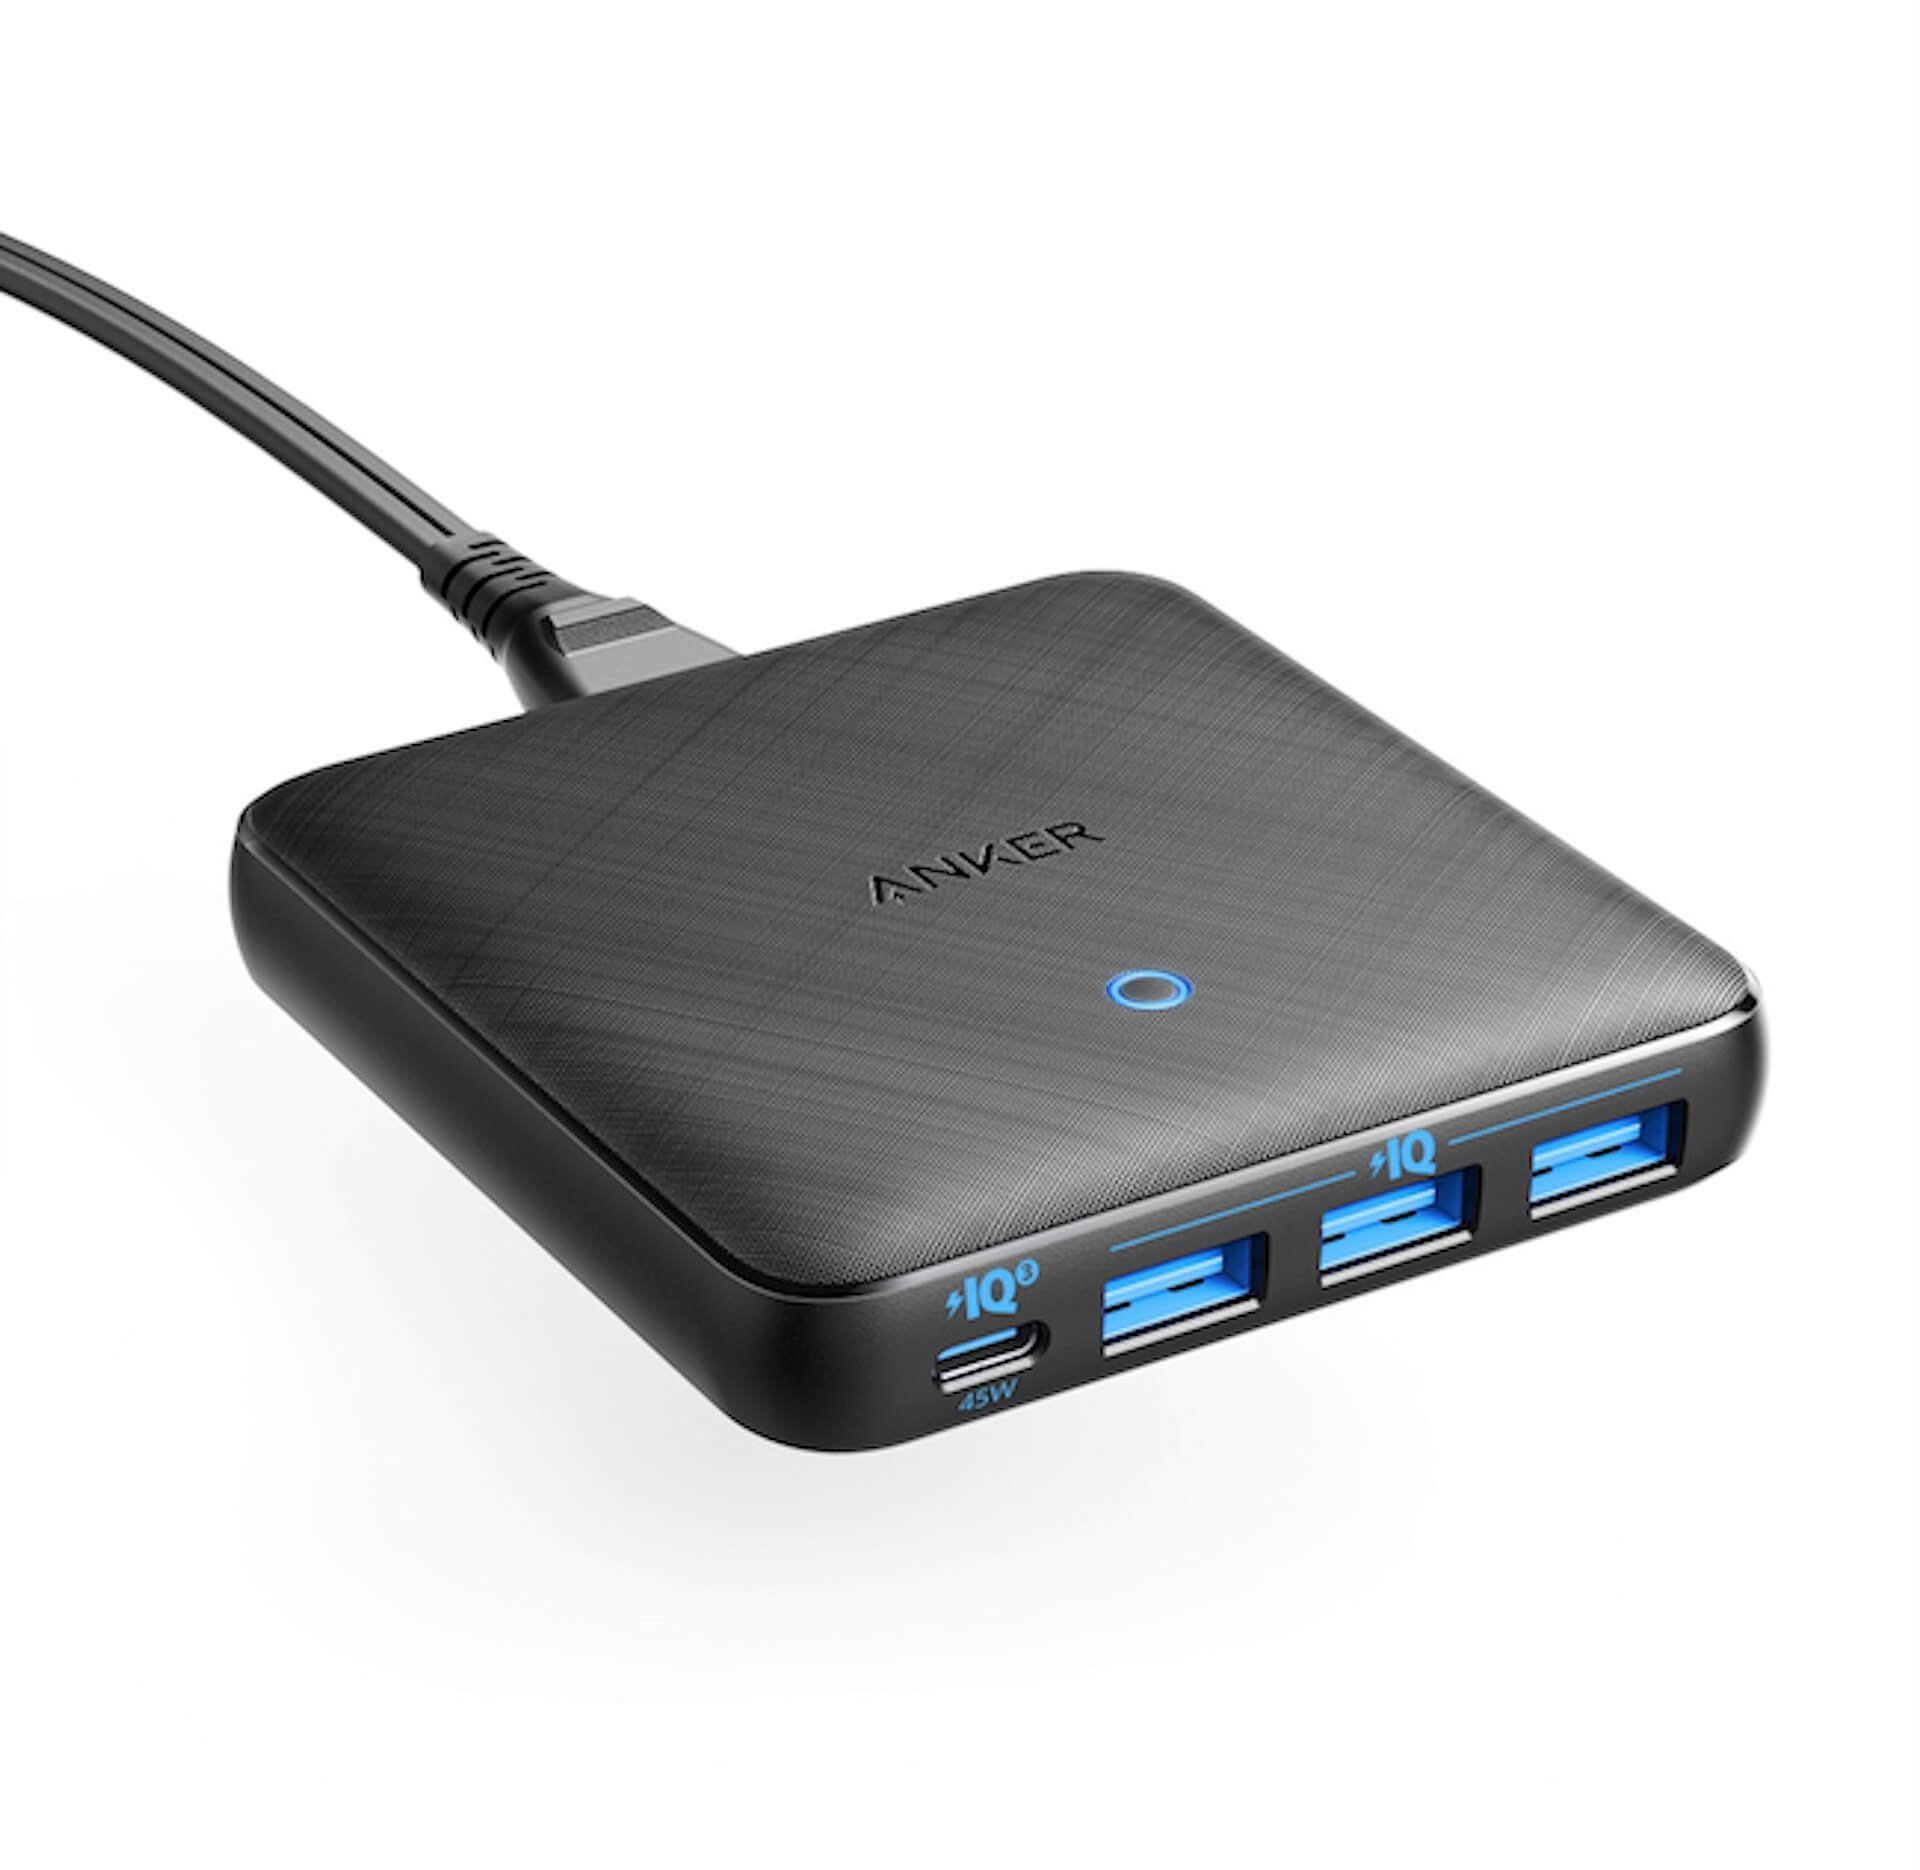 Ankerの最新急速スマホ充電器が超薄くて高性能!「Anker PowerPort Atom lll Slim(Four Ports)」発売 tech200117_anker_charge_1